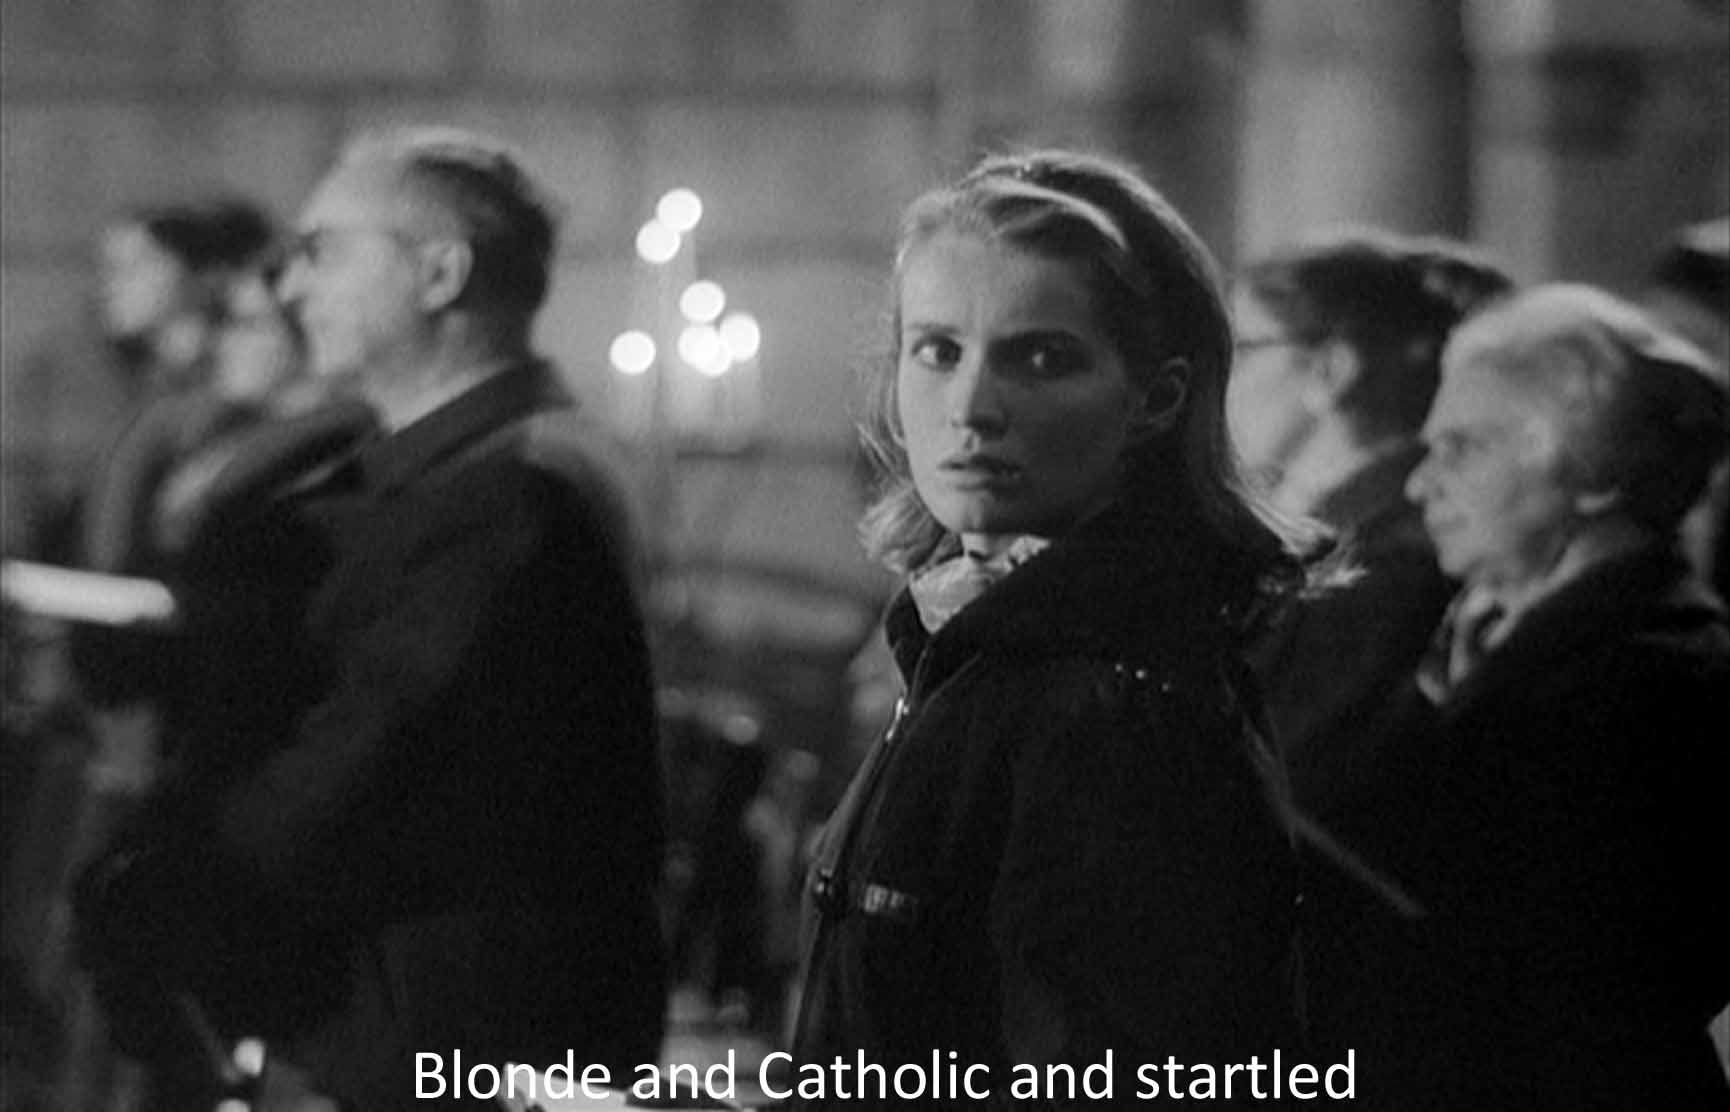 Blonde and Catholic and startled